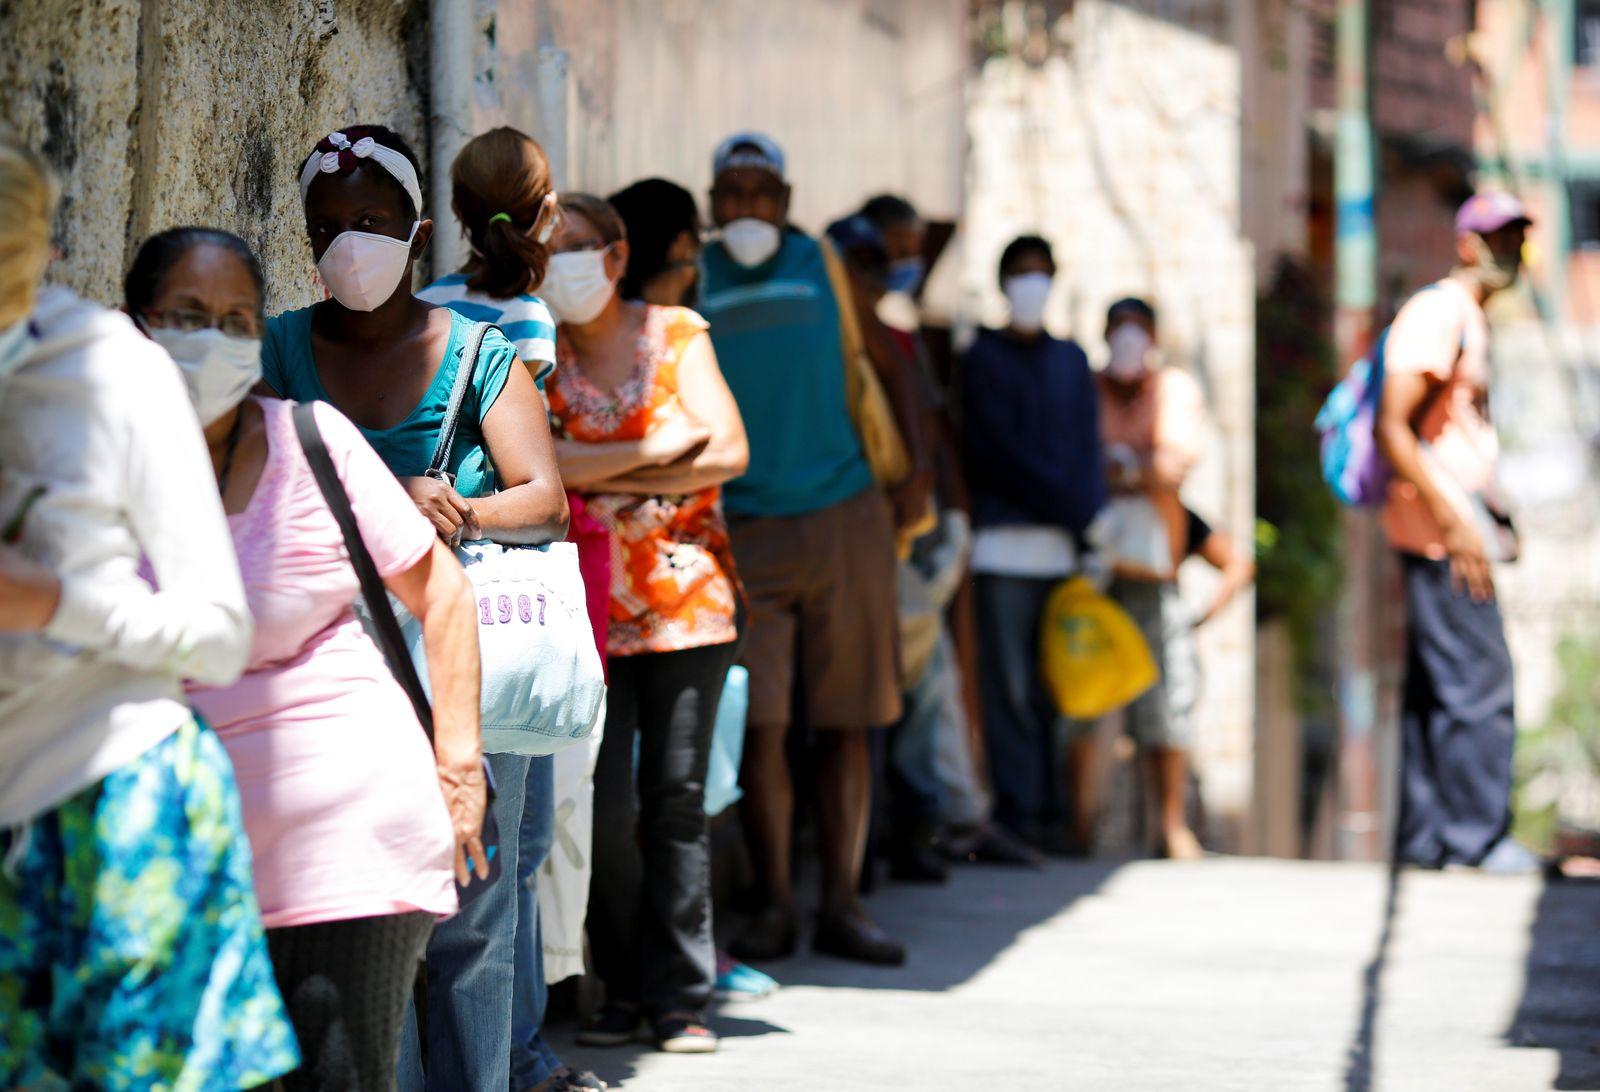 People make a line to receive food from a charity, in the slum of Carapita, during the nationwide quarantine due to the coronavirus disease (COVID-19) outbreak, in Caracas